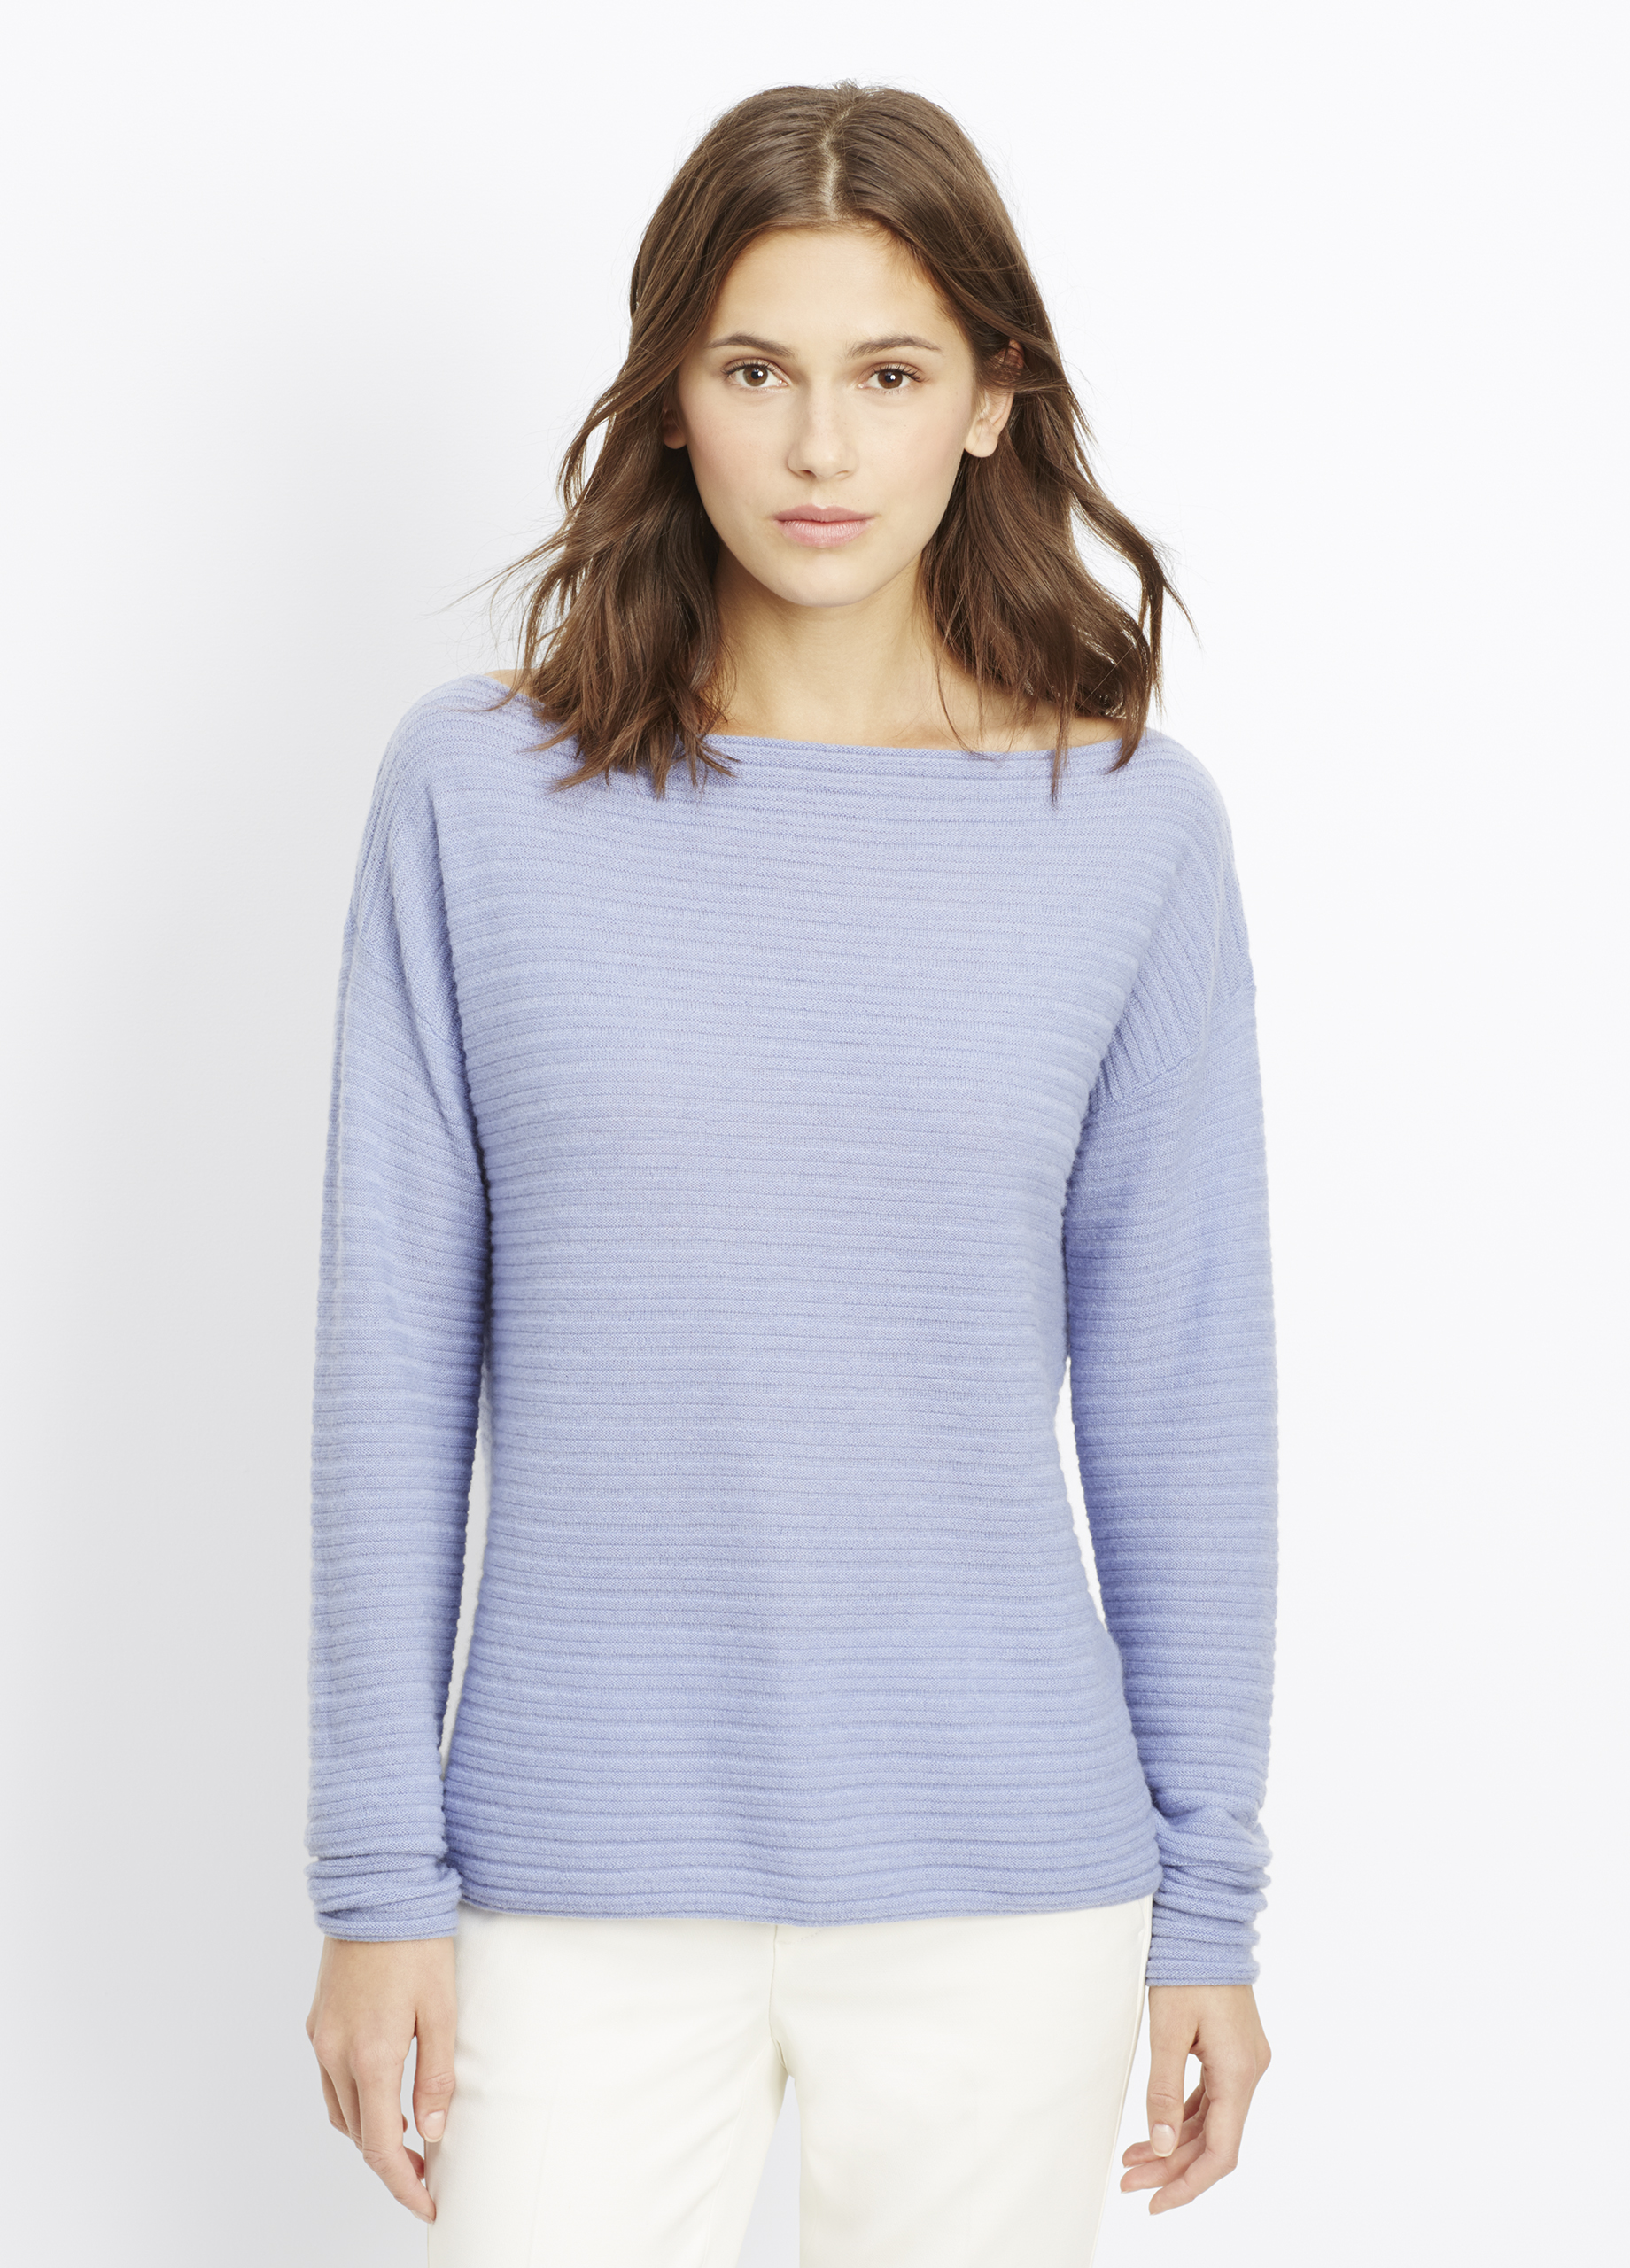 Cashmere Horizontal Rib Boatneck Sweater for Women | Vince